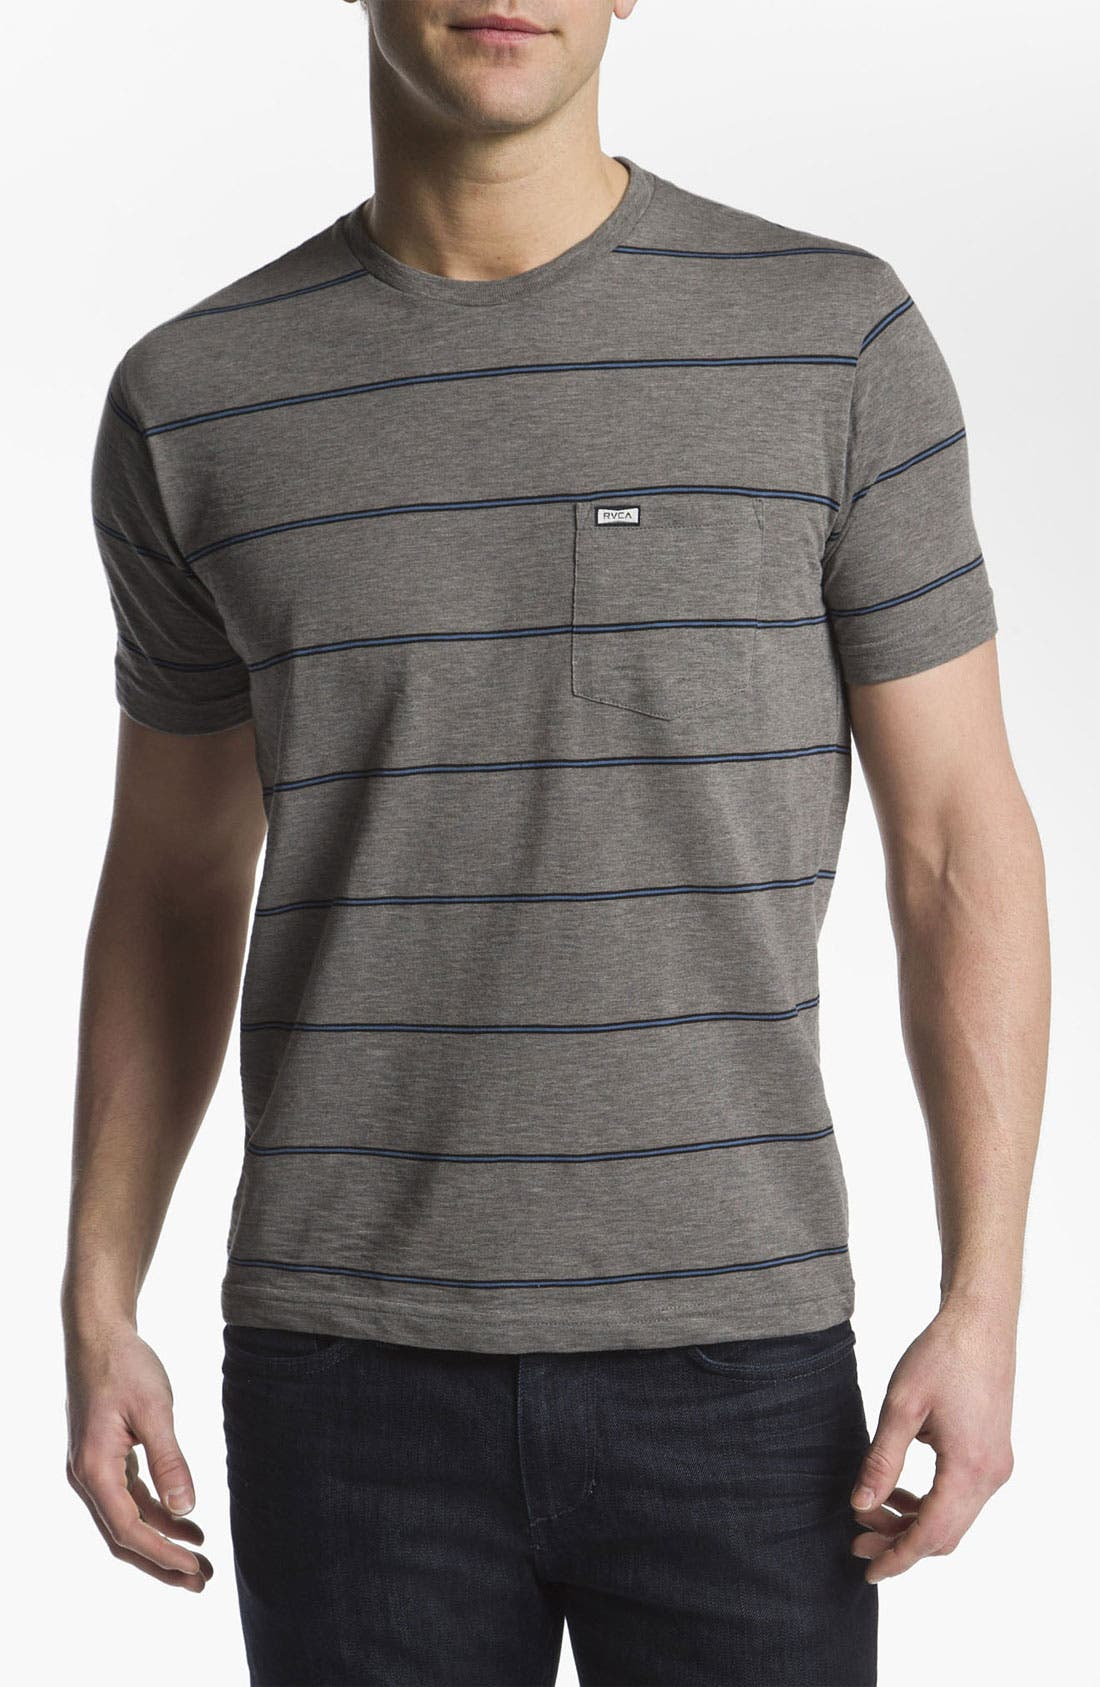 Alternate Image 1 Selected - RVCA 'Emmet' T-Shirt